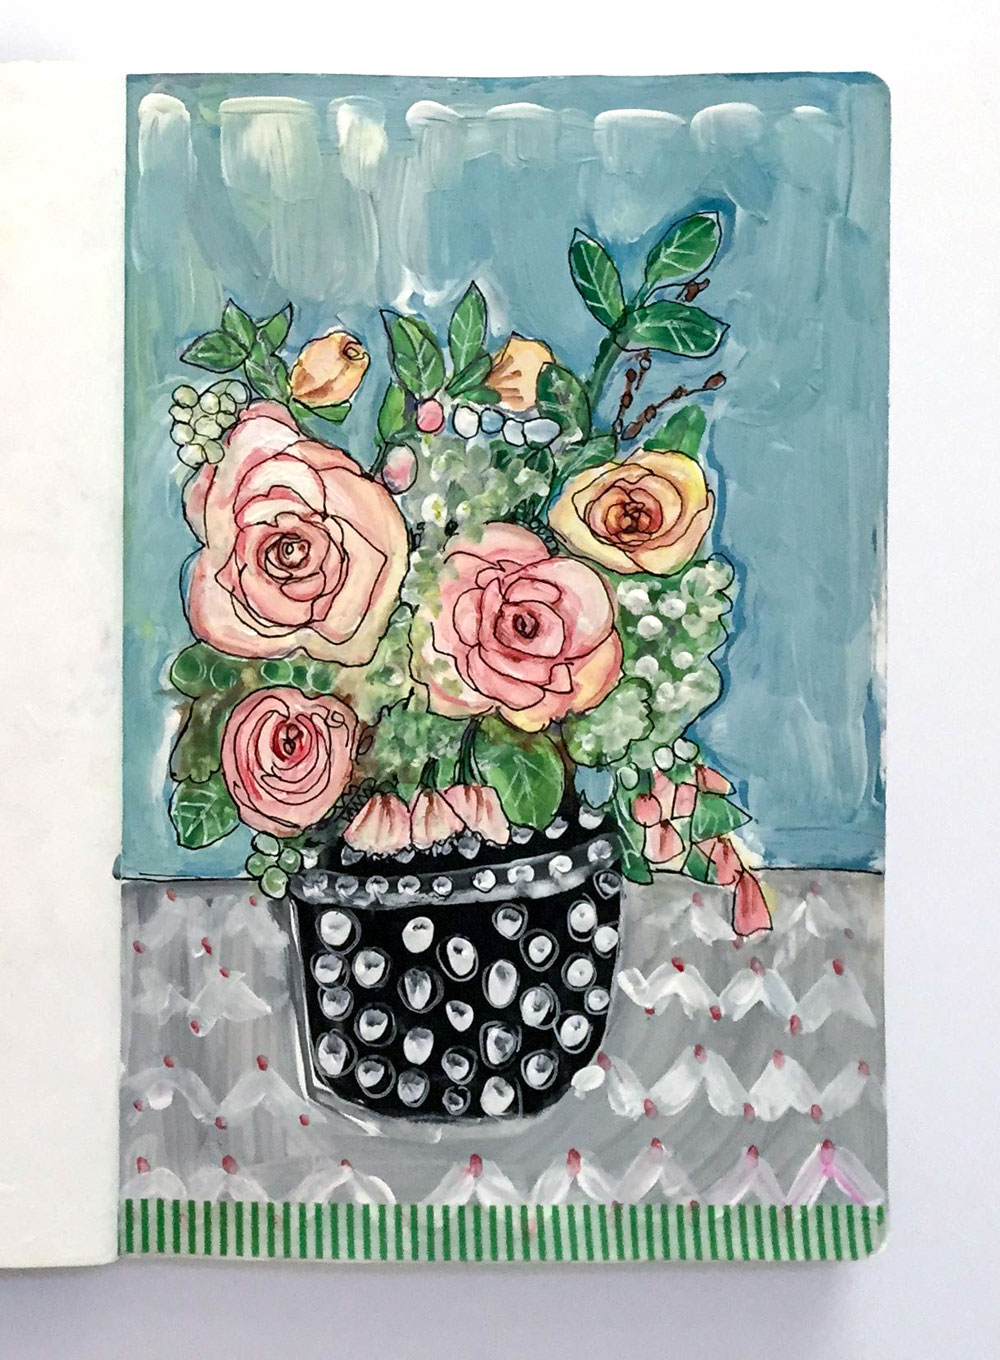 Bouquet of Pink Flowers in a Black Polka Dot Vase